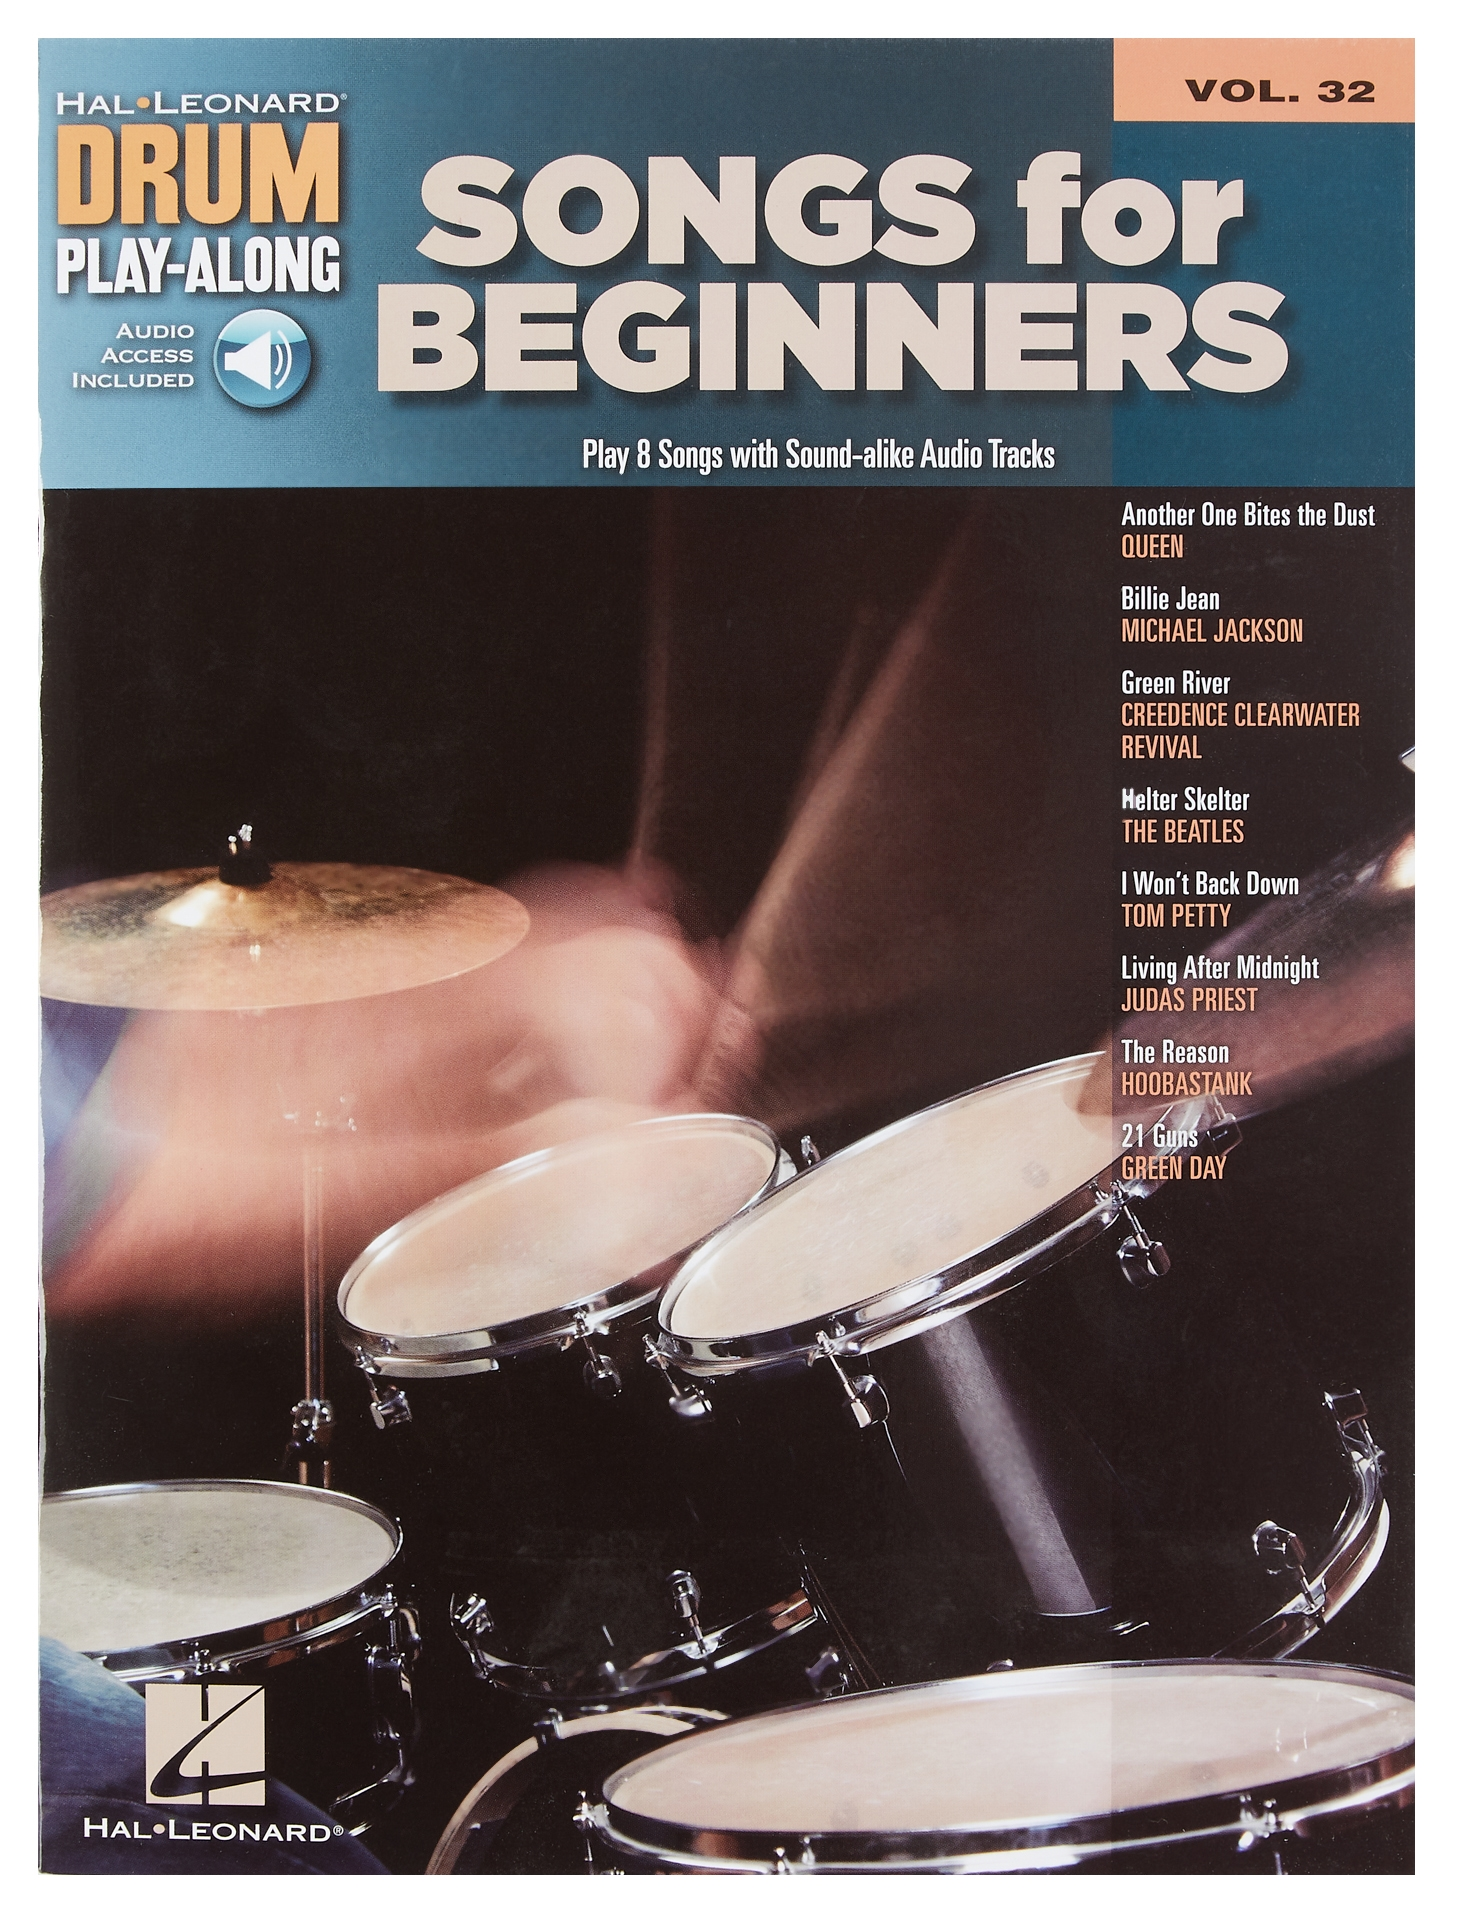 MS Drum Play-Along: Volume 32